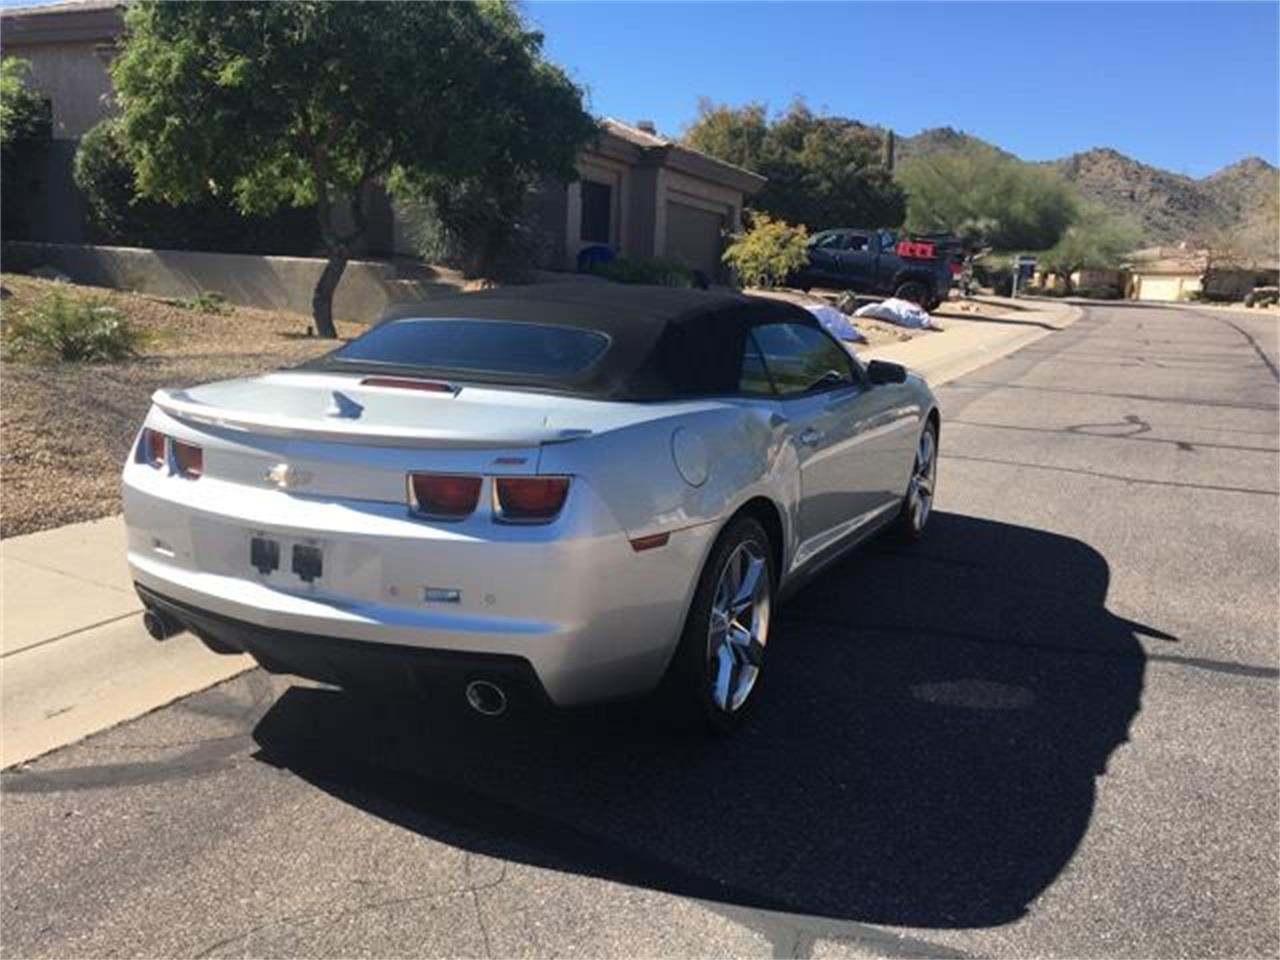 Large Picture of '11 Chevrolet Camaro SS located in Arizona - $22,000.00 Offered by a Private Seller - PH18